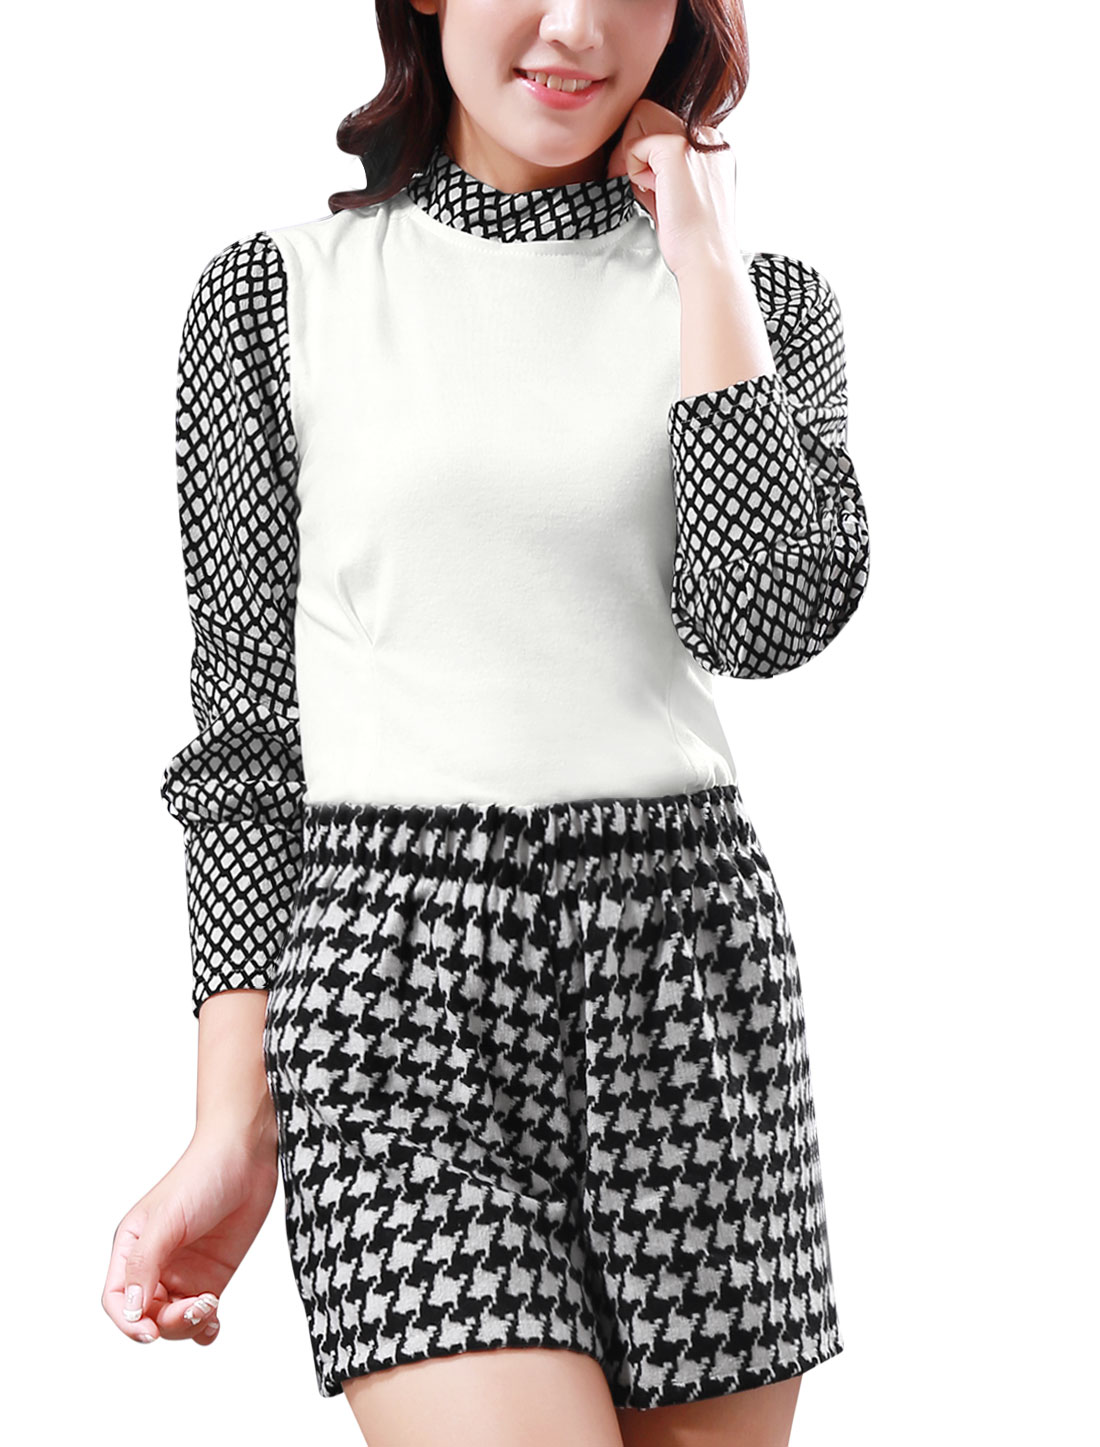 Lady Plaids Stand Collar Long Sleeve Casual T-Shirt Black White S